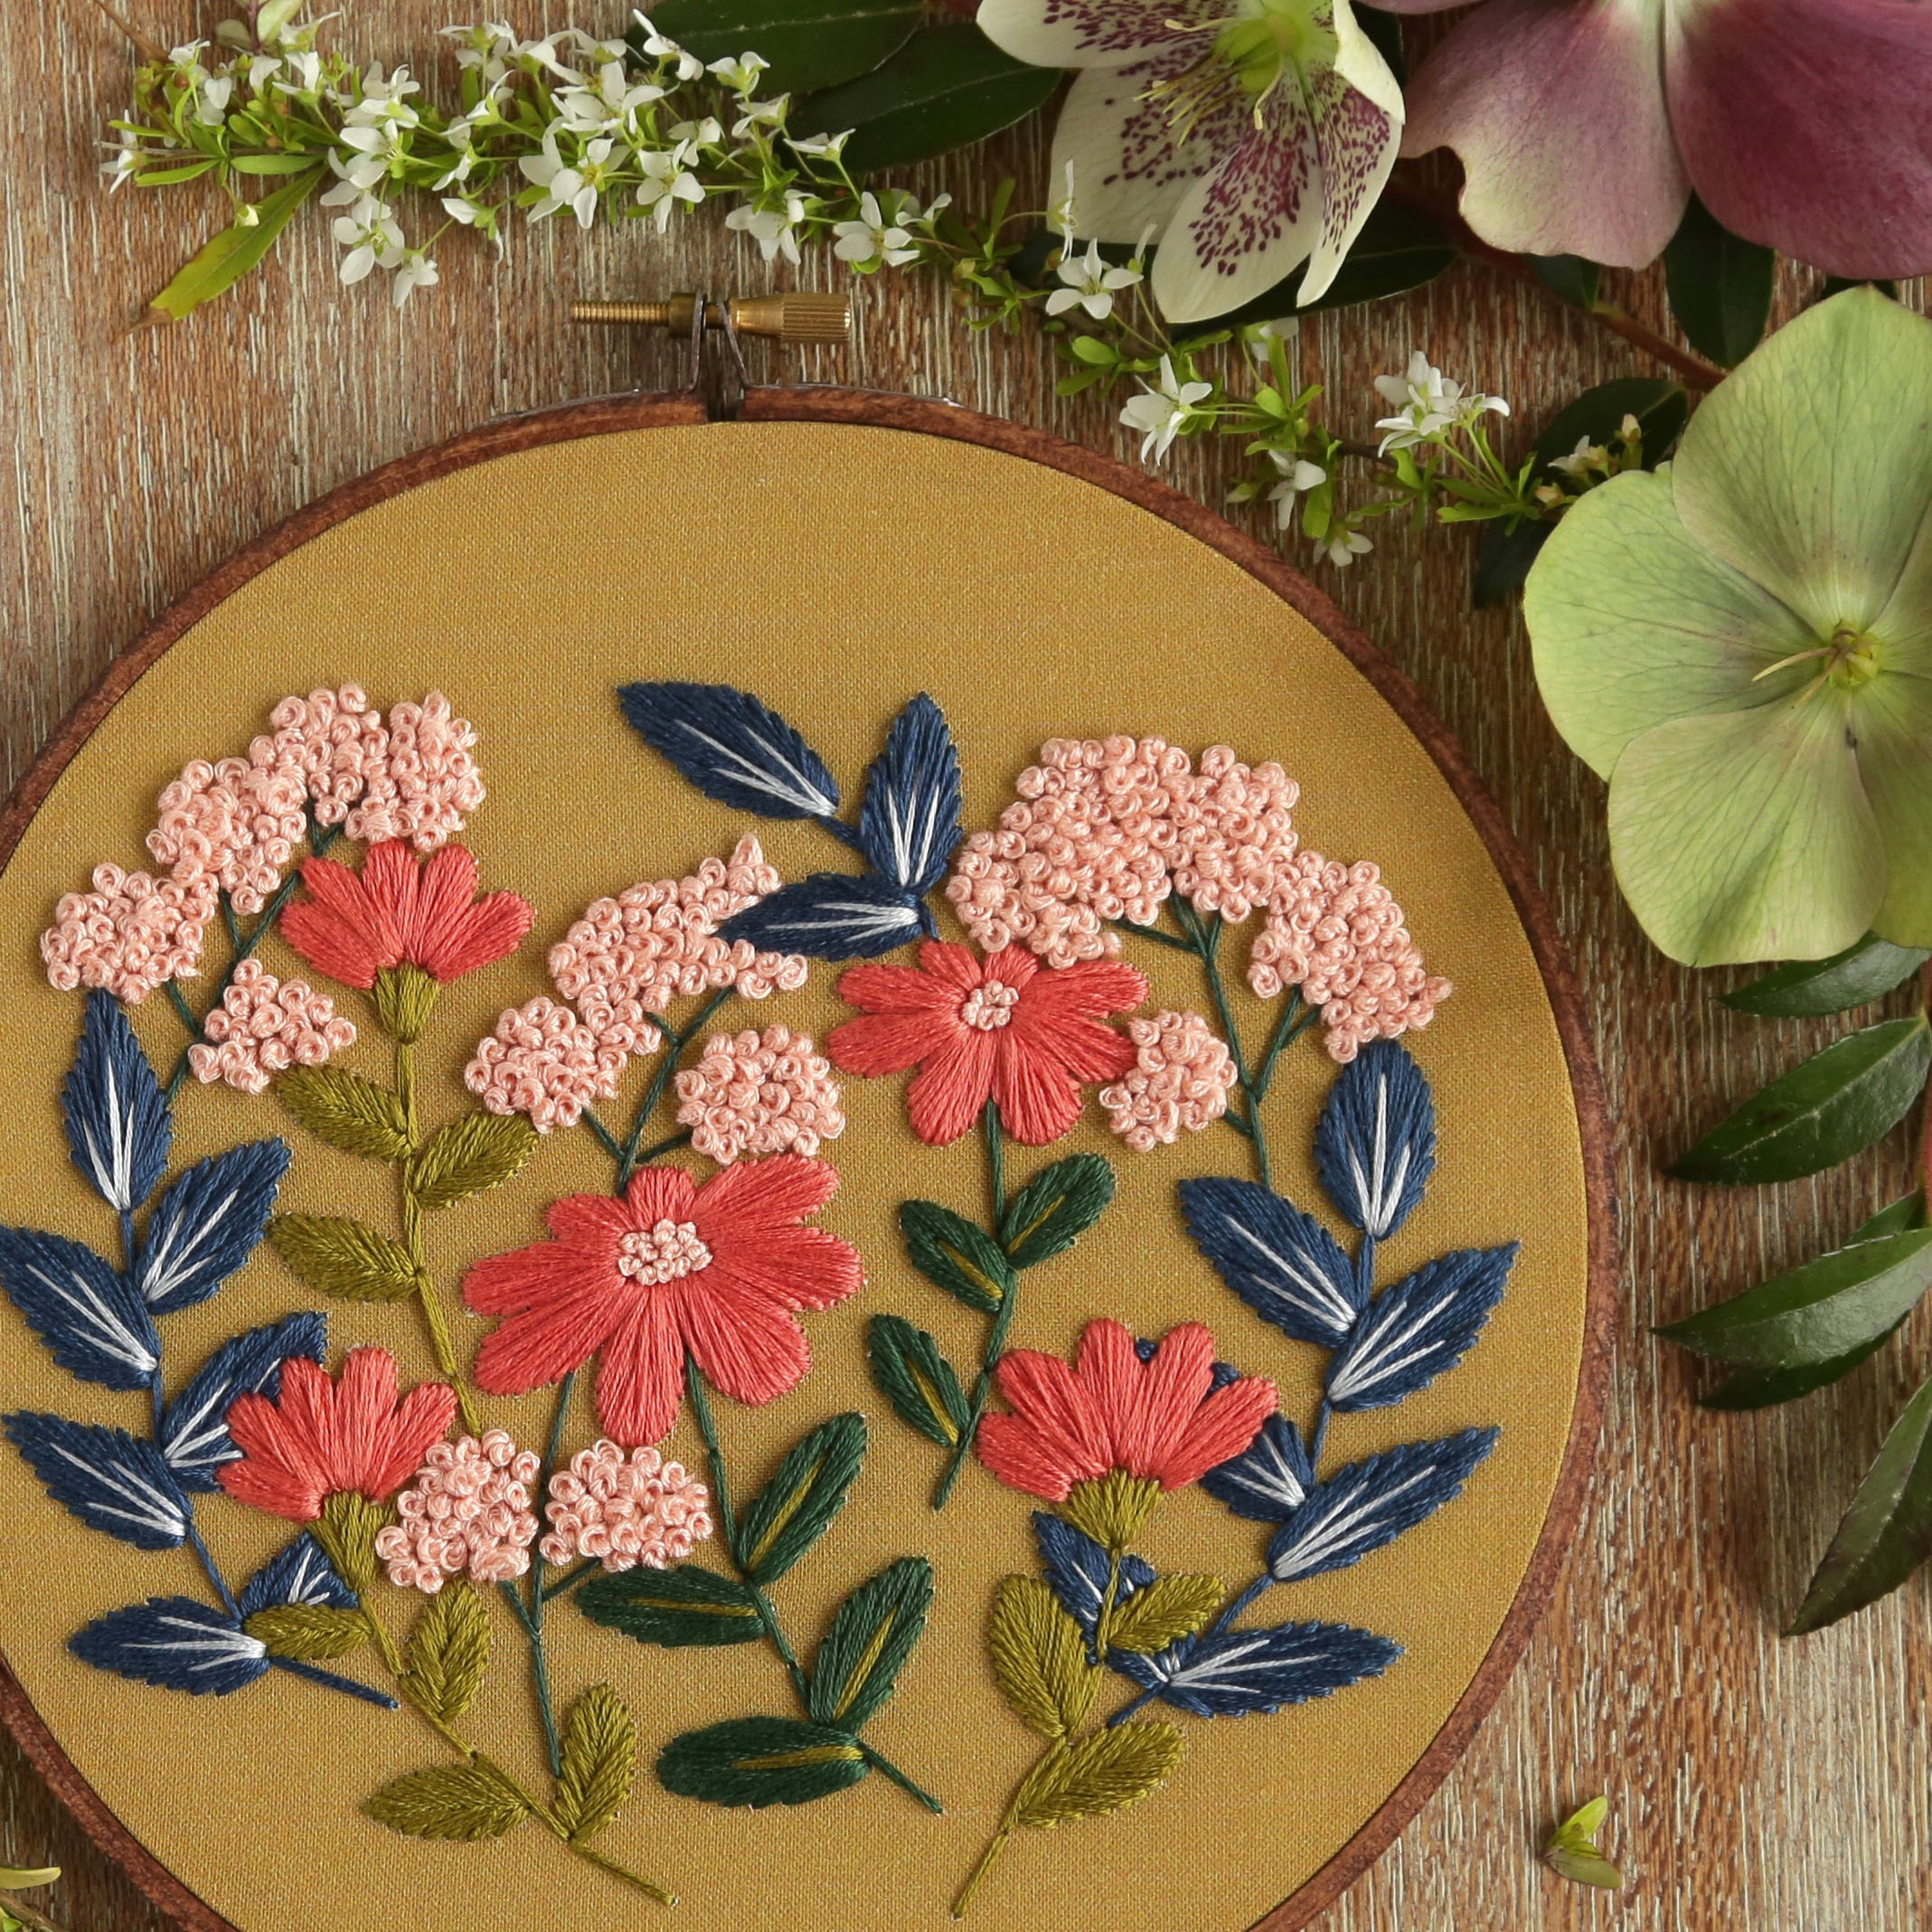 Floral embroidery - Hoffelt & Hooper Co.